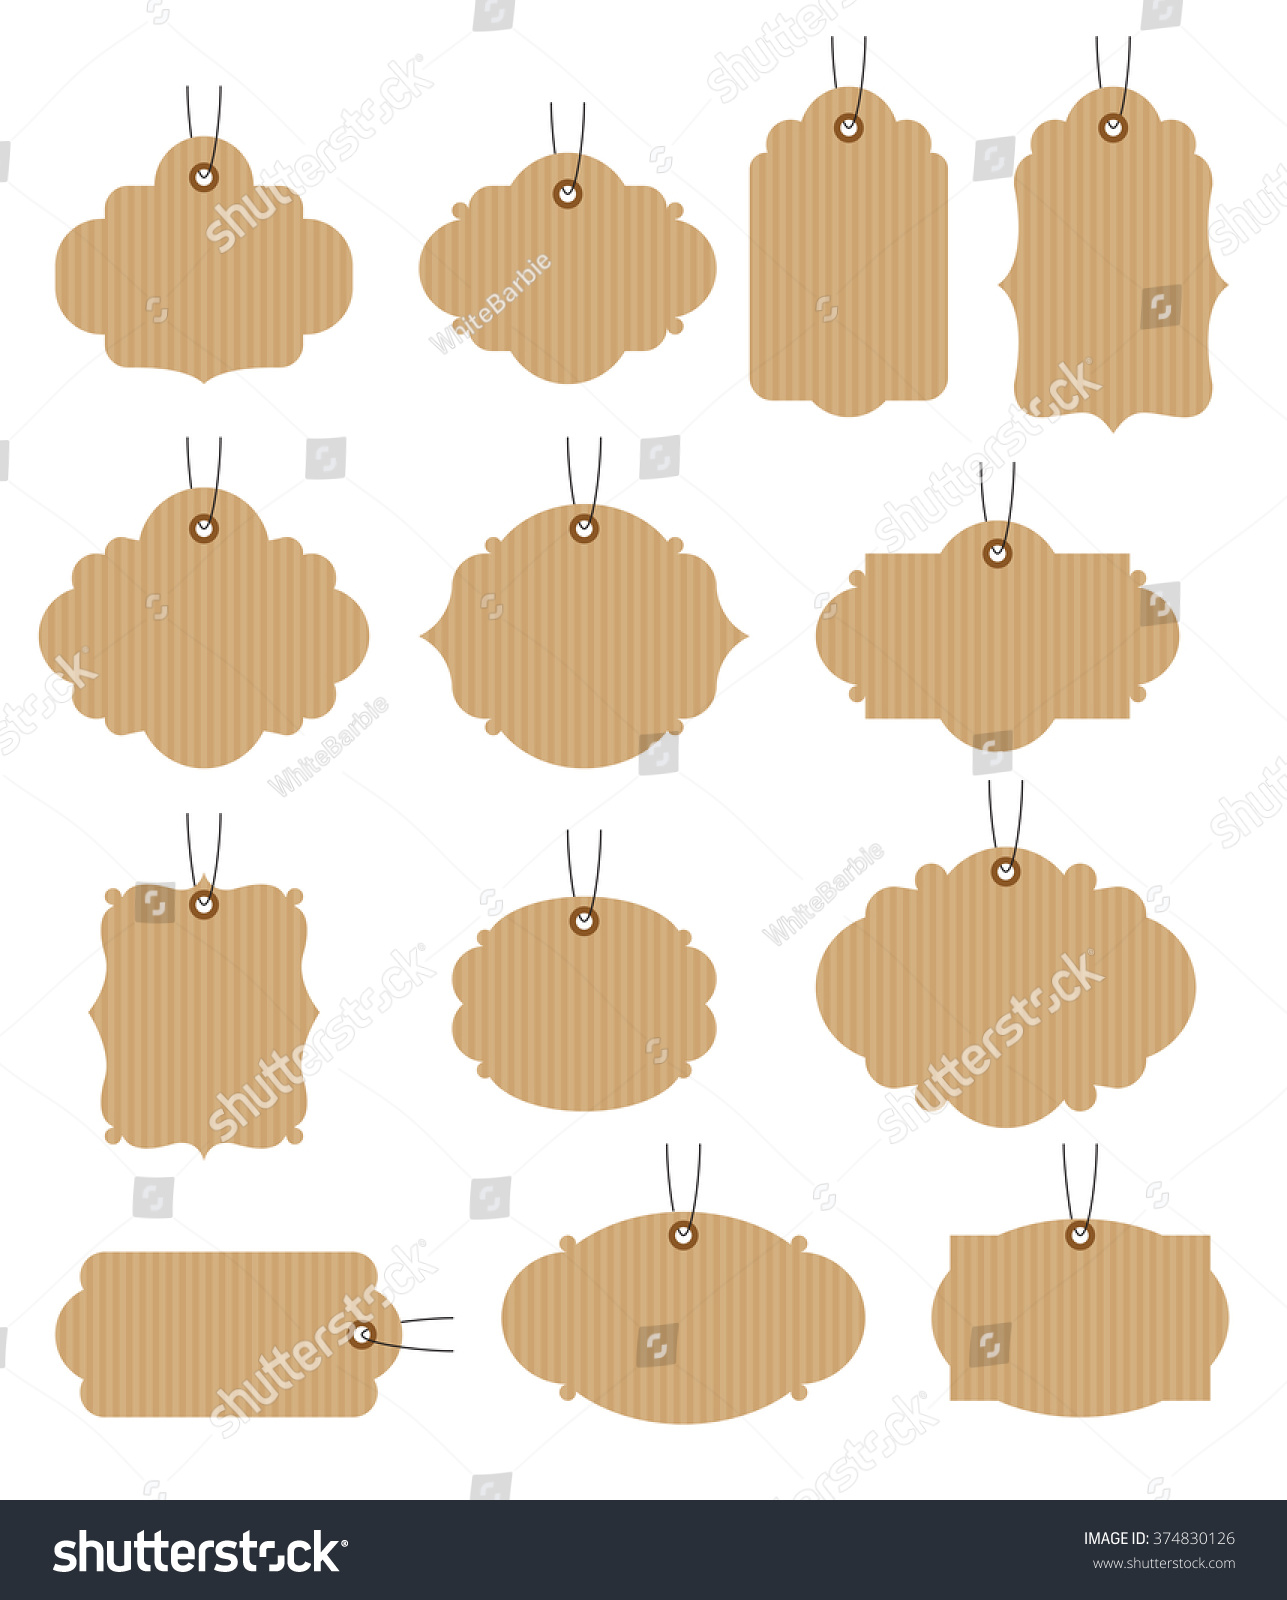 Set vintage tags vector illustration craft stock vector 374830126 set of vintage tags vector illustration craft paper tags jeuxipadfo Choice Image